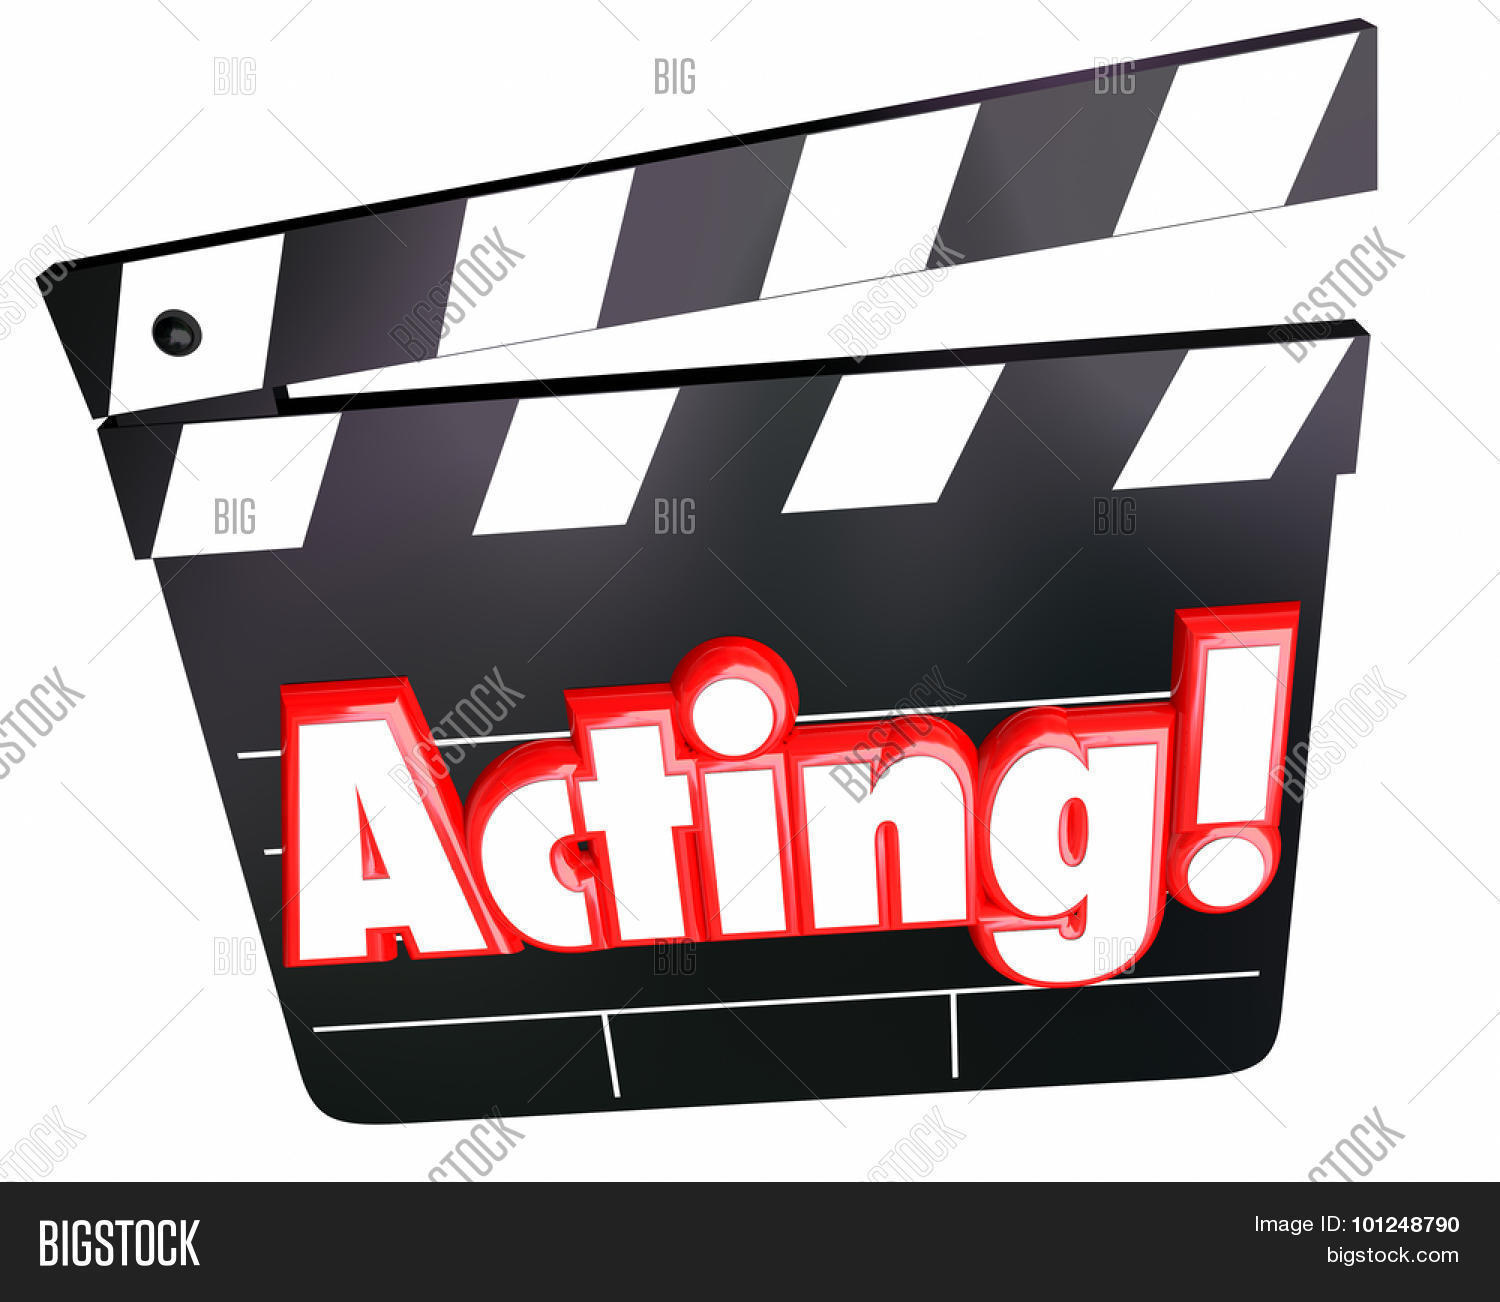 acting word red 3d letters on movie image   photo bigstock movie film clip art border movie film clipart